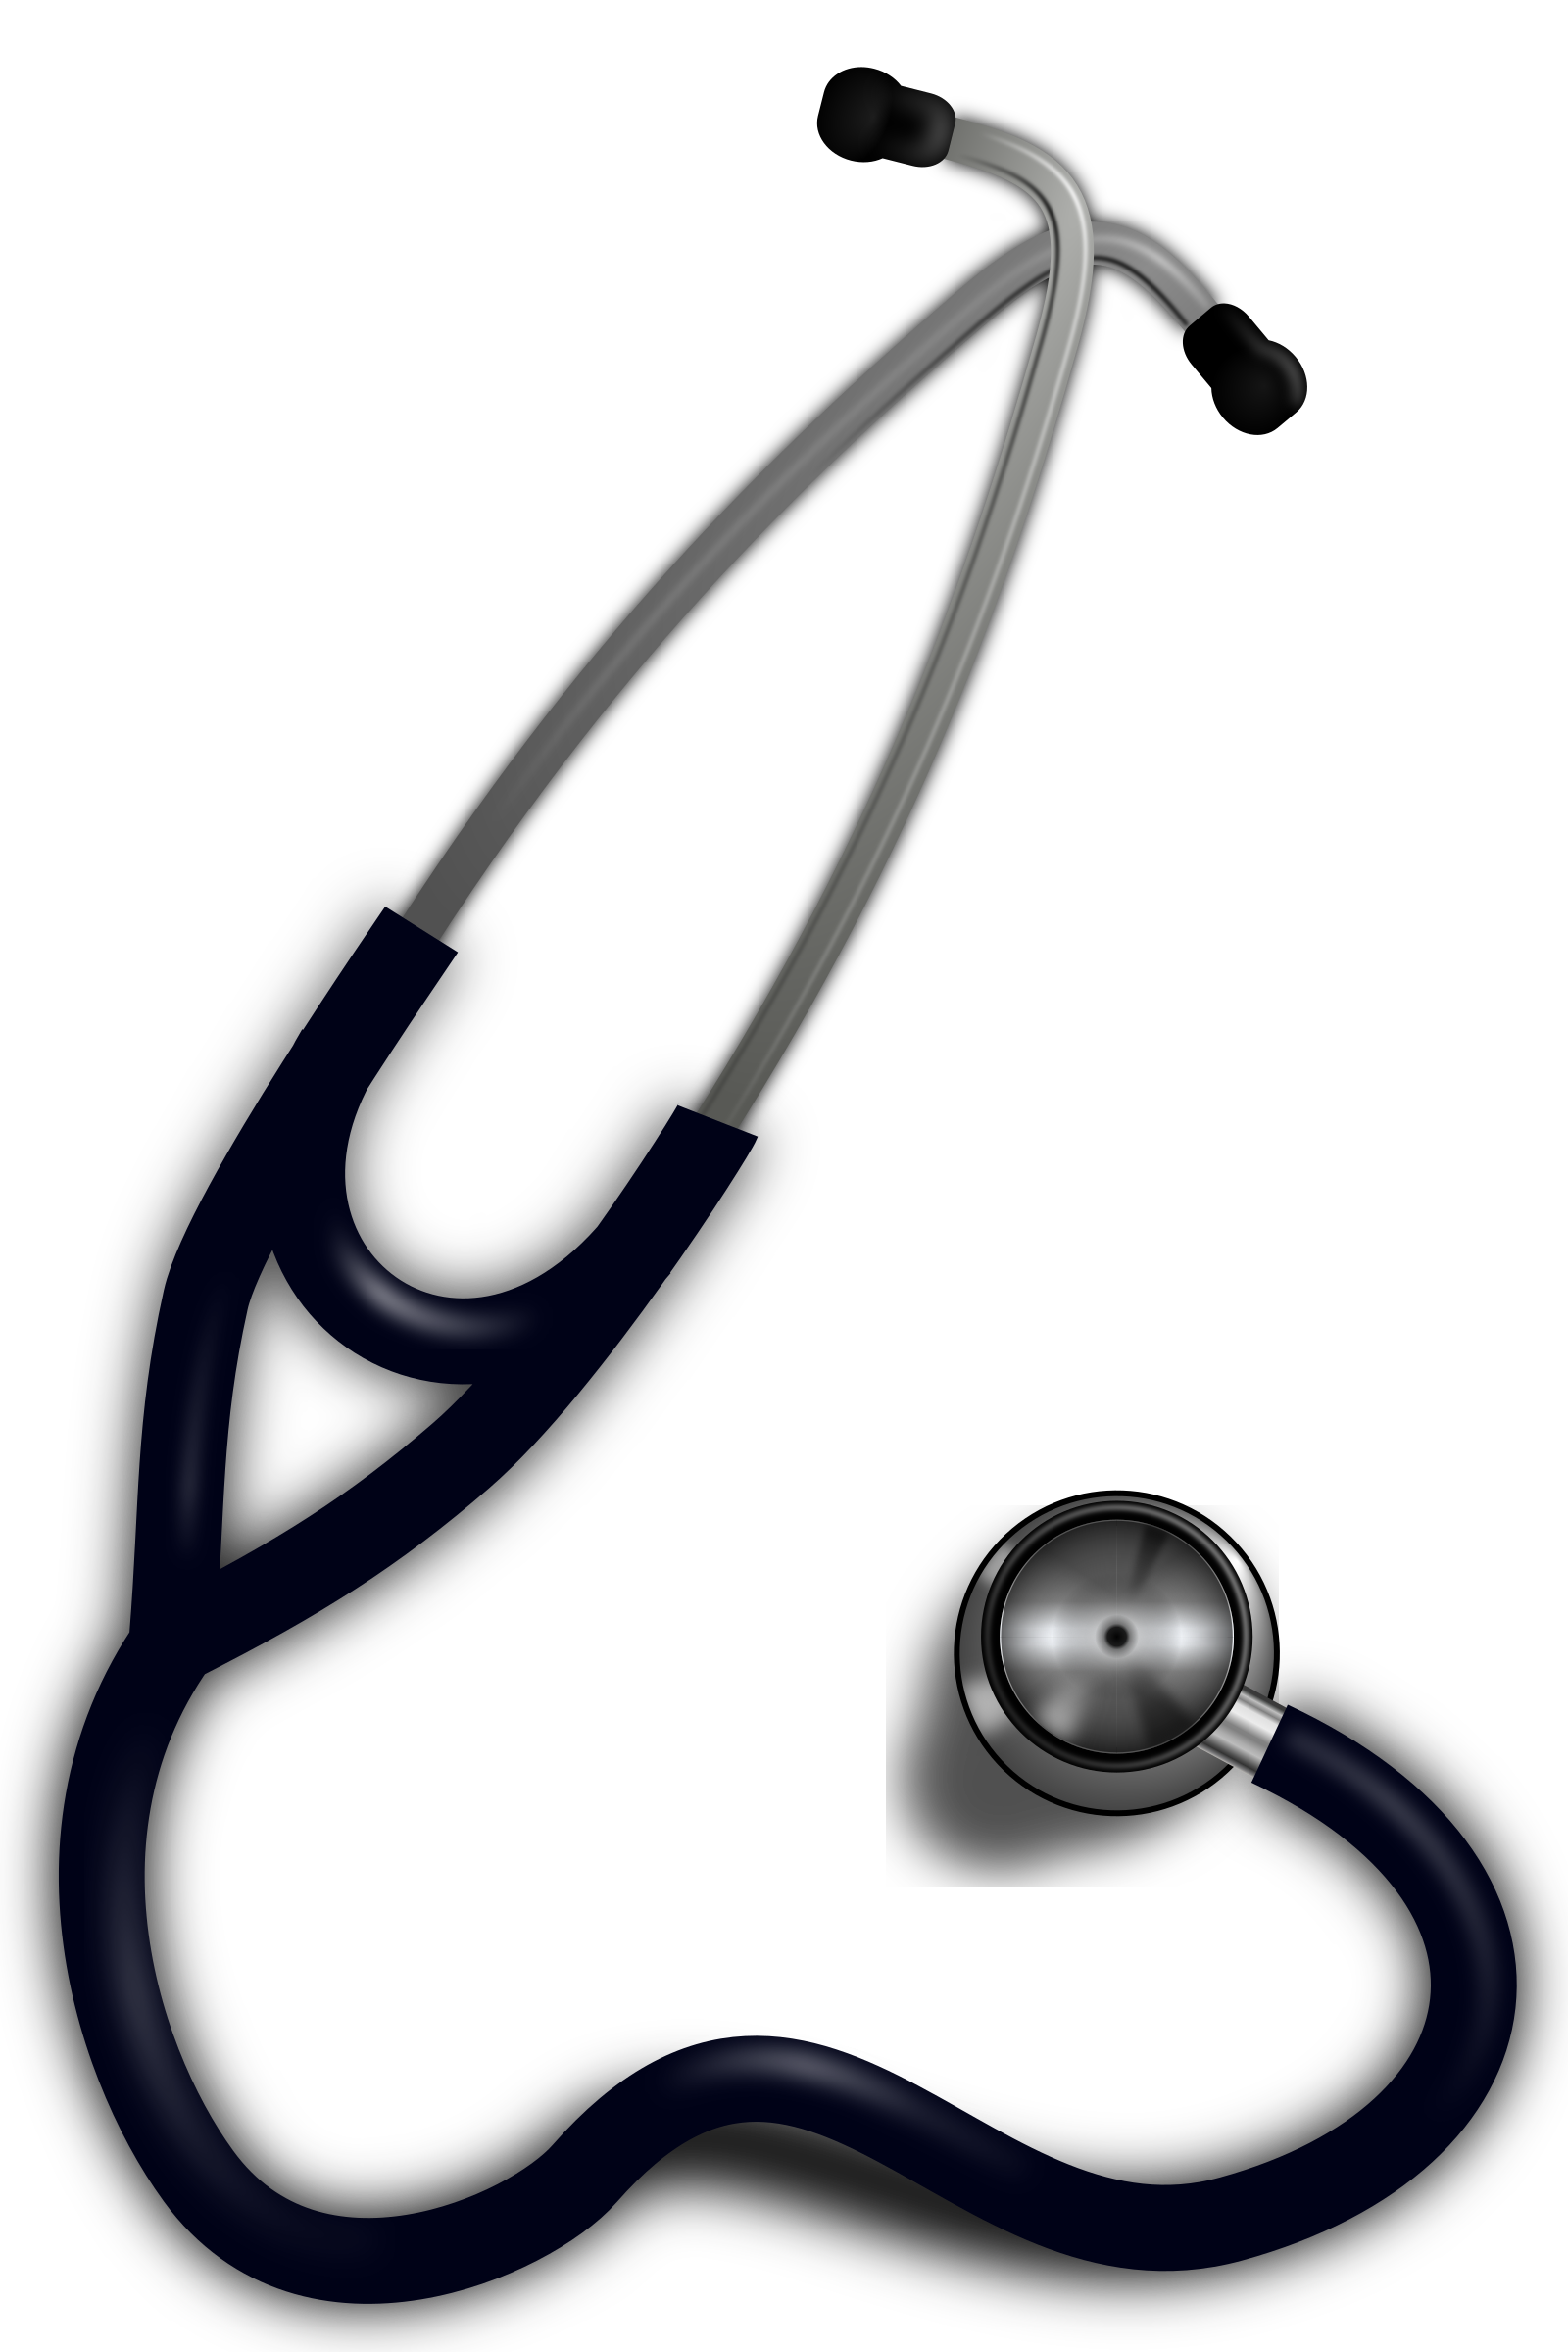 Stethoscope by metalmarious